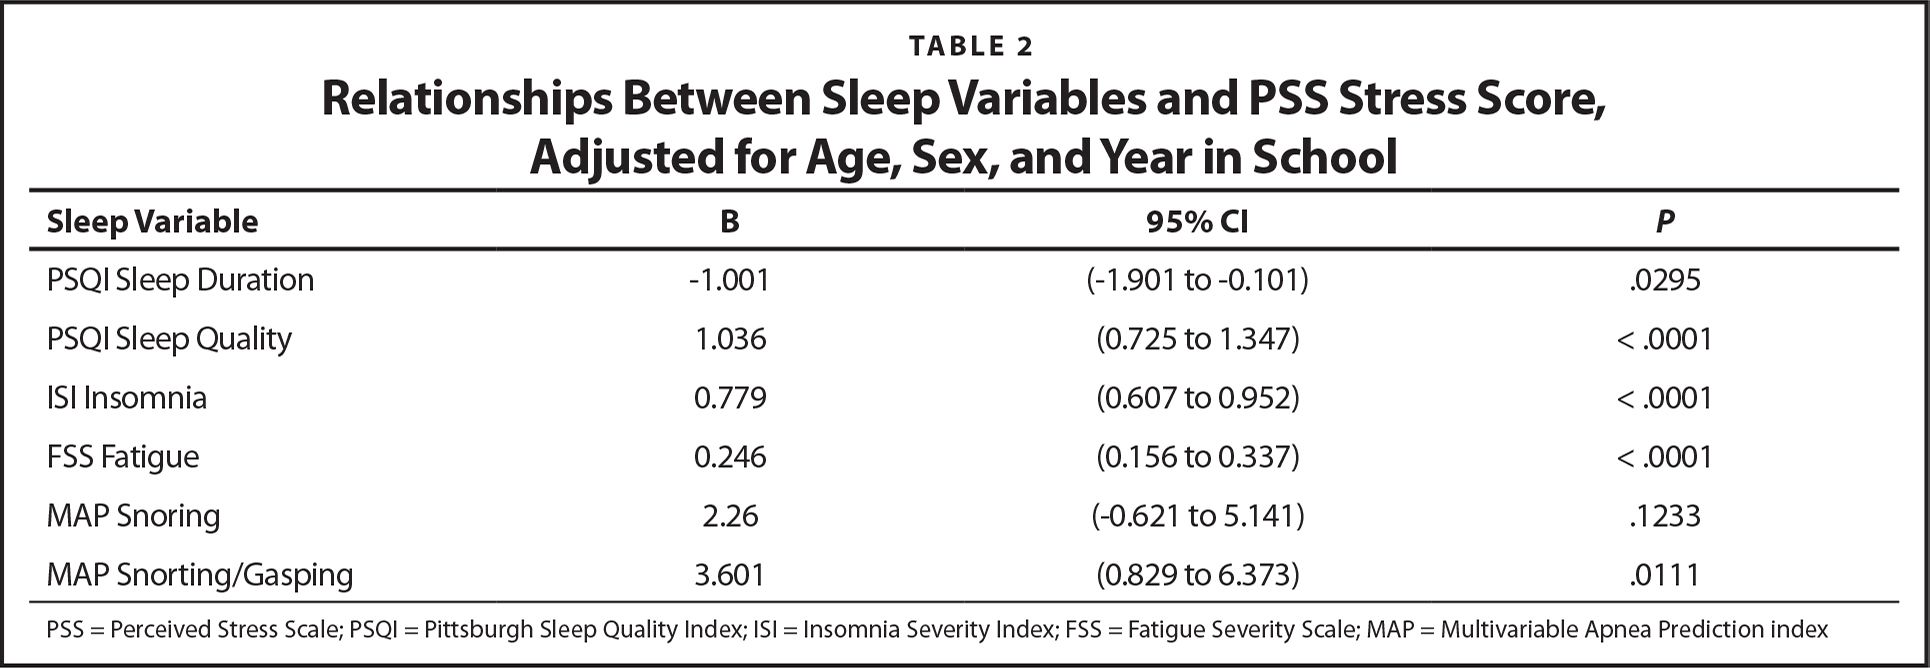 Relationships Between Sleep Variables and PSS Stress Score, Adjusted for Age, Sex, and Year in School